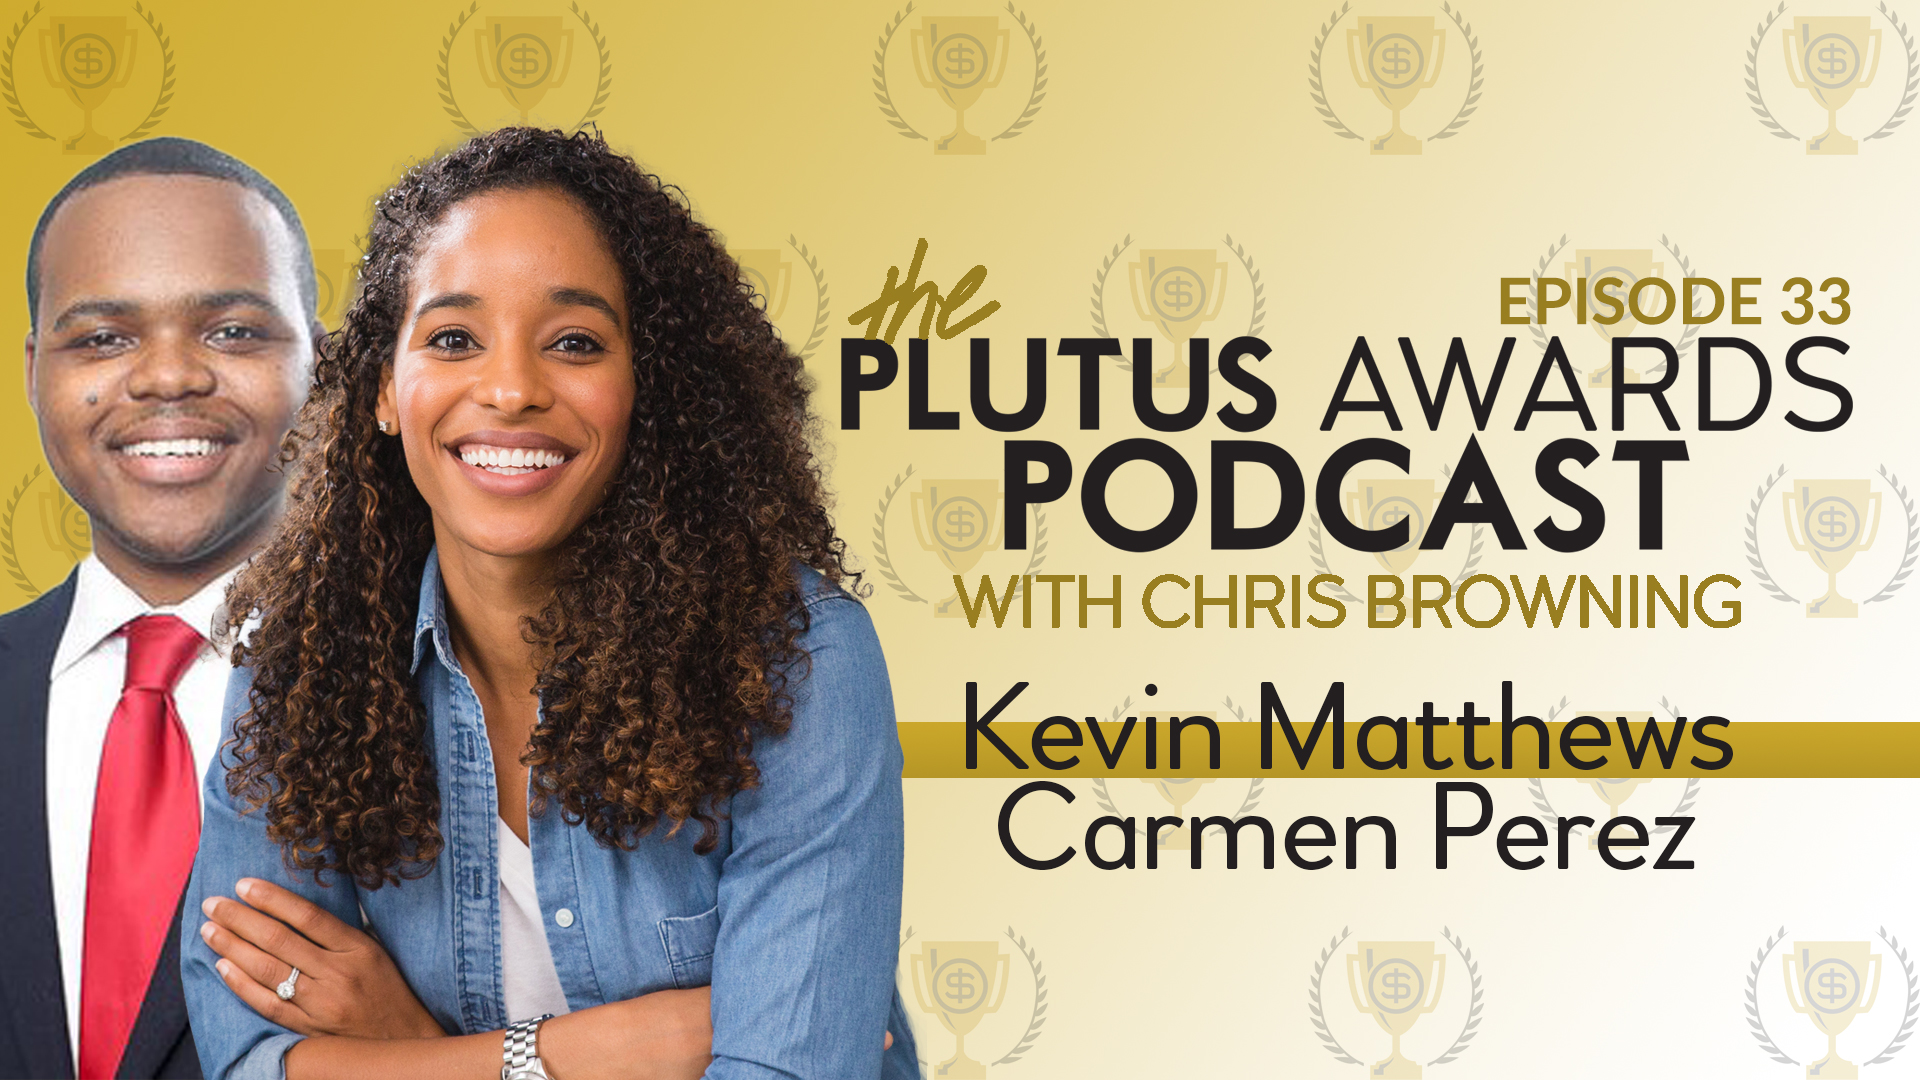 Plutus Awards Podcast Kevin Matthews Carmen Perez Featured Image